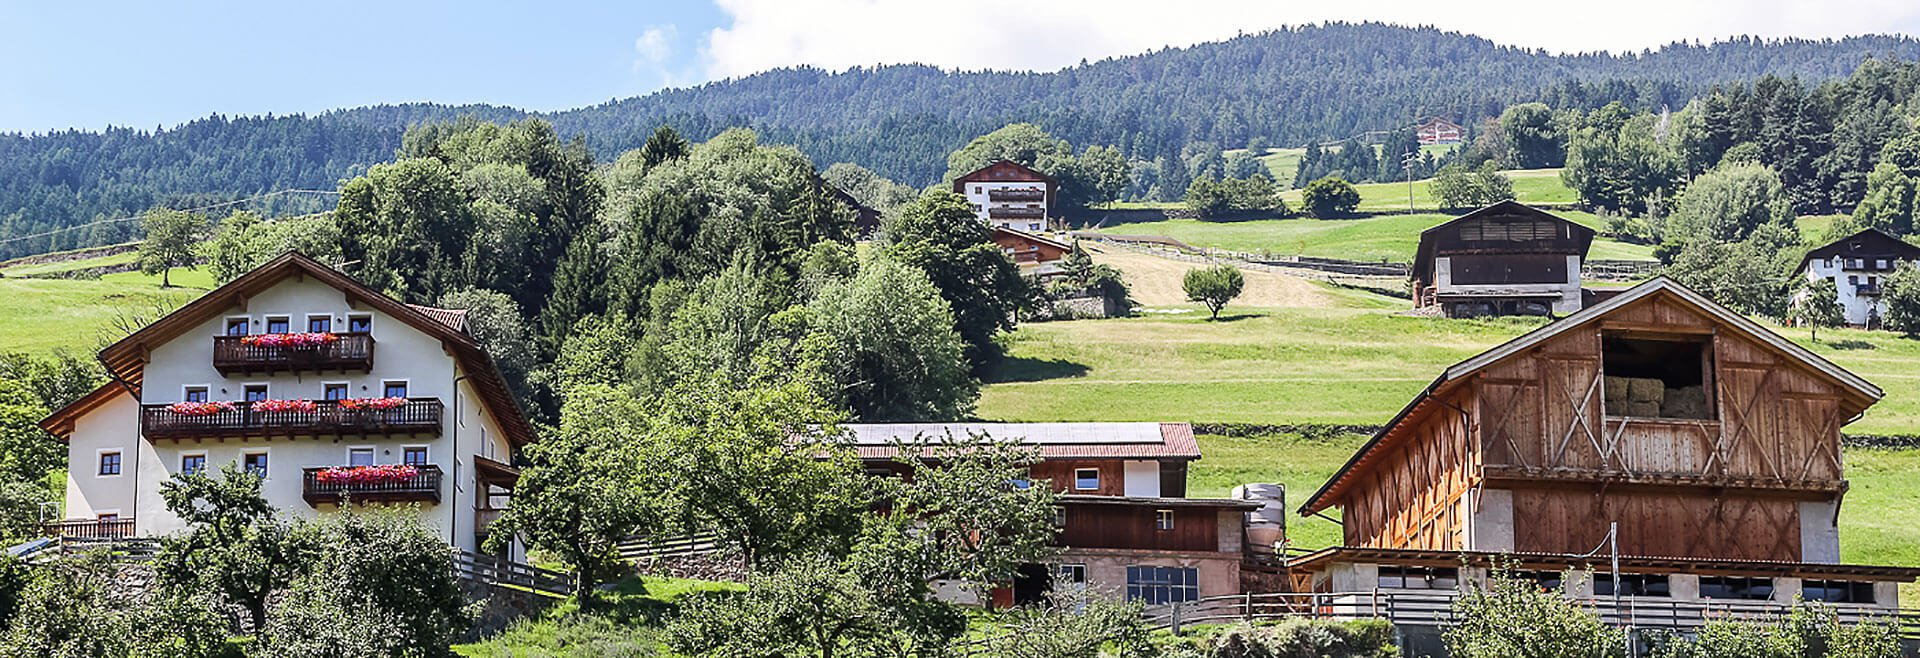 Falserhof Villandro